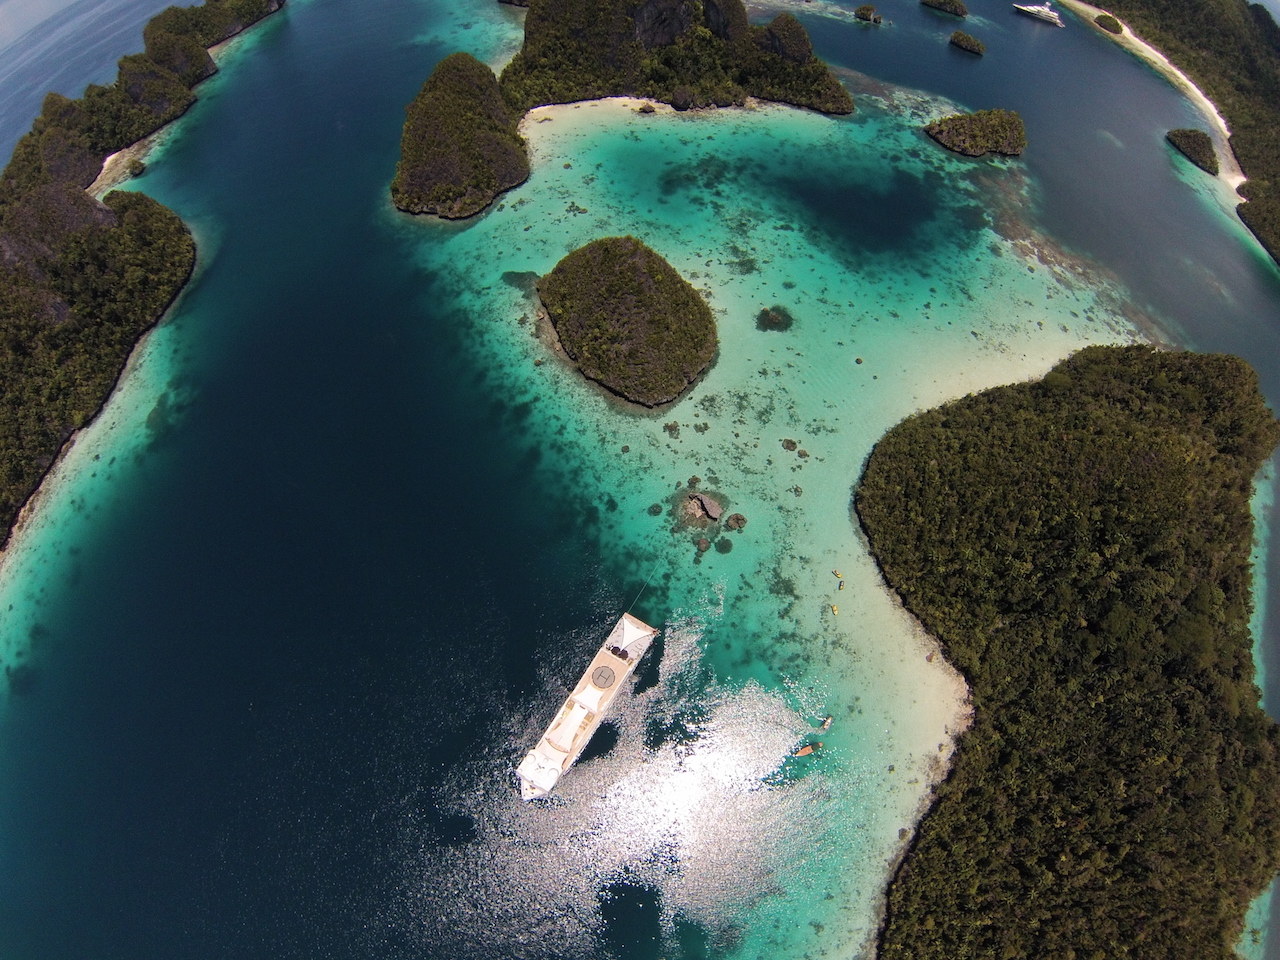 Indonesia opens its borders, cruising yachts welcome again